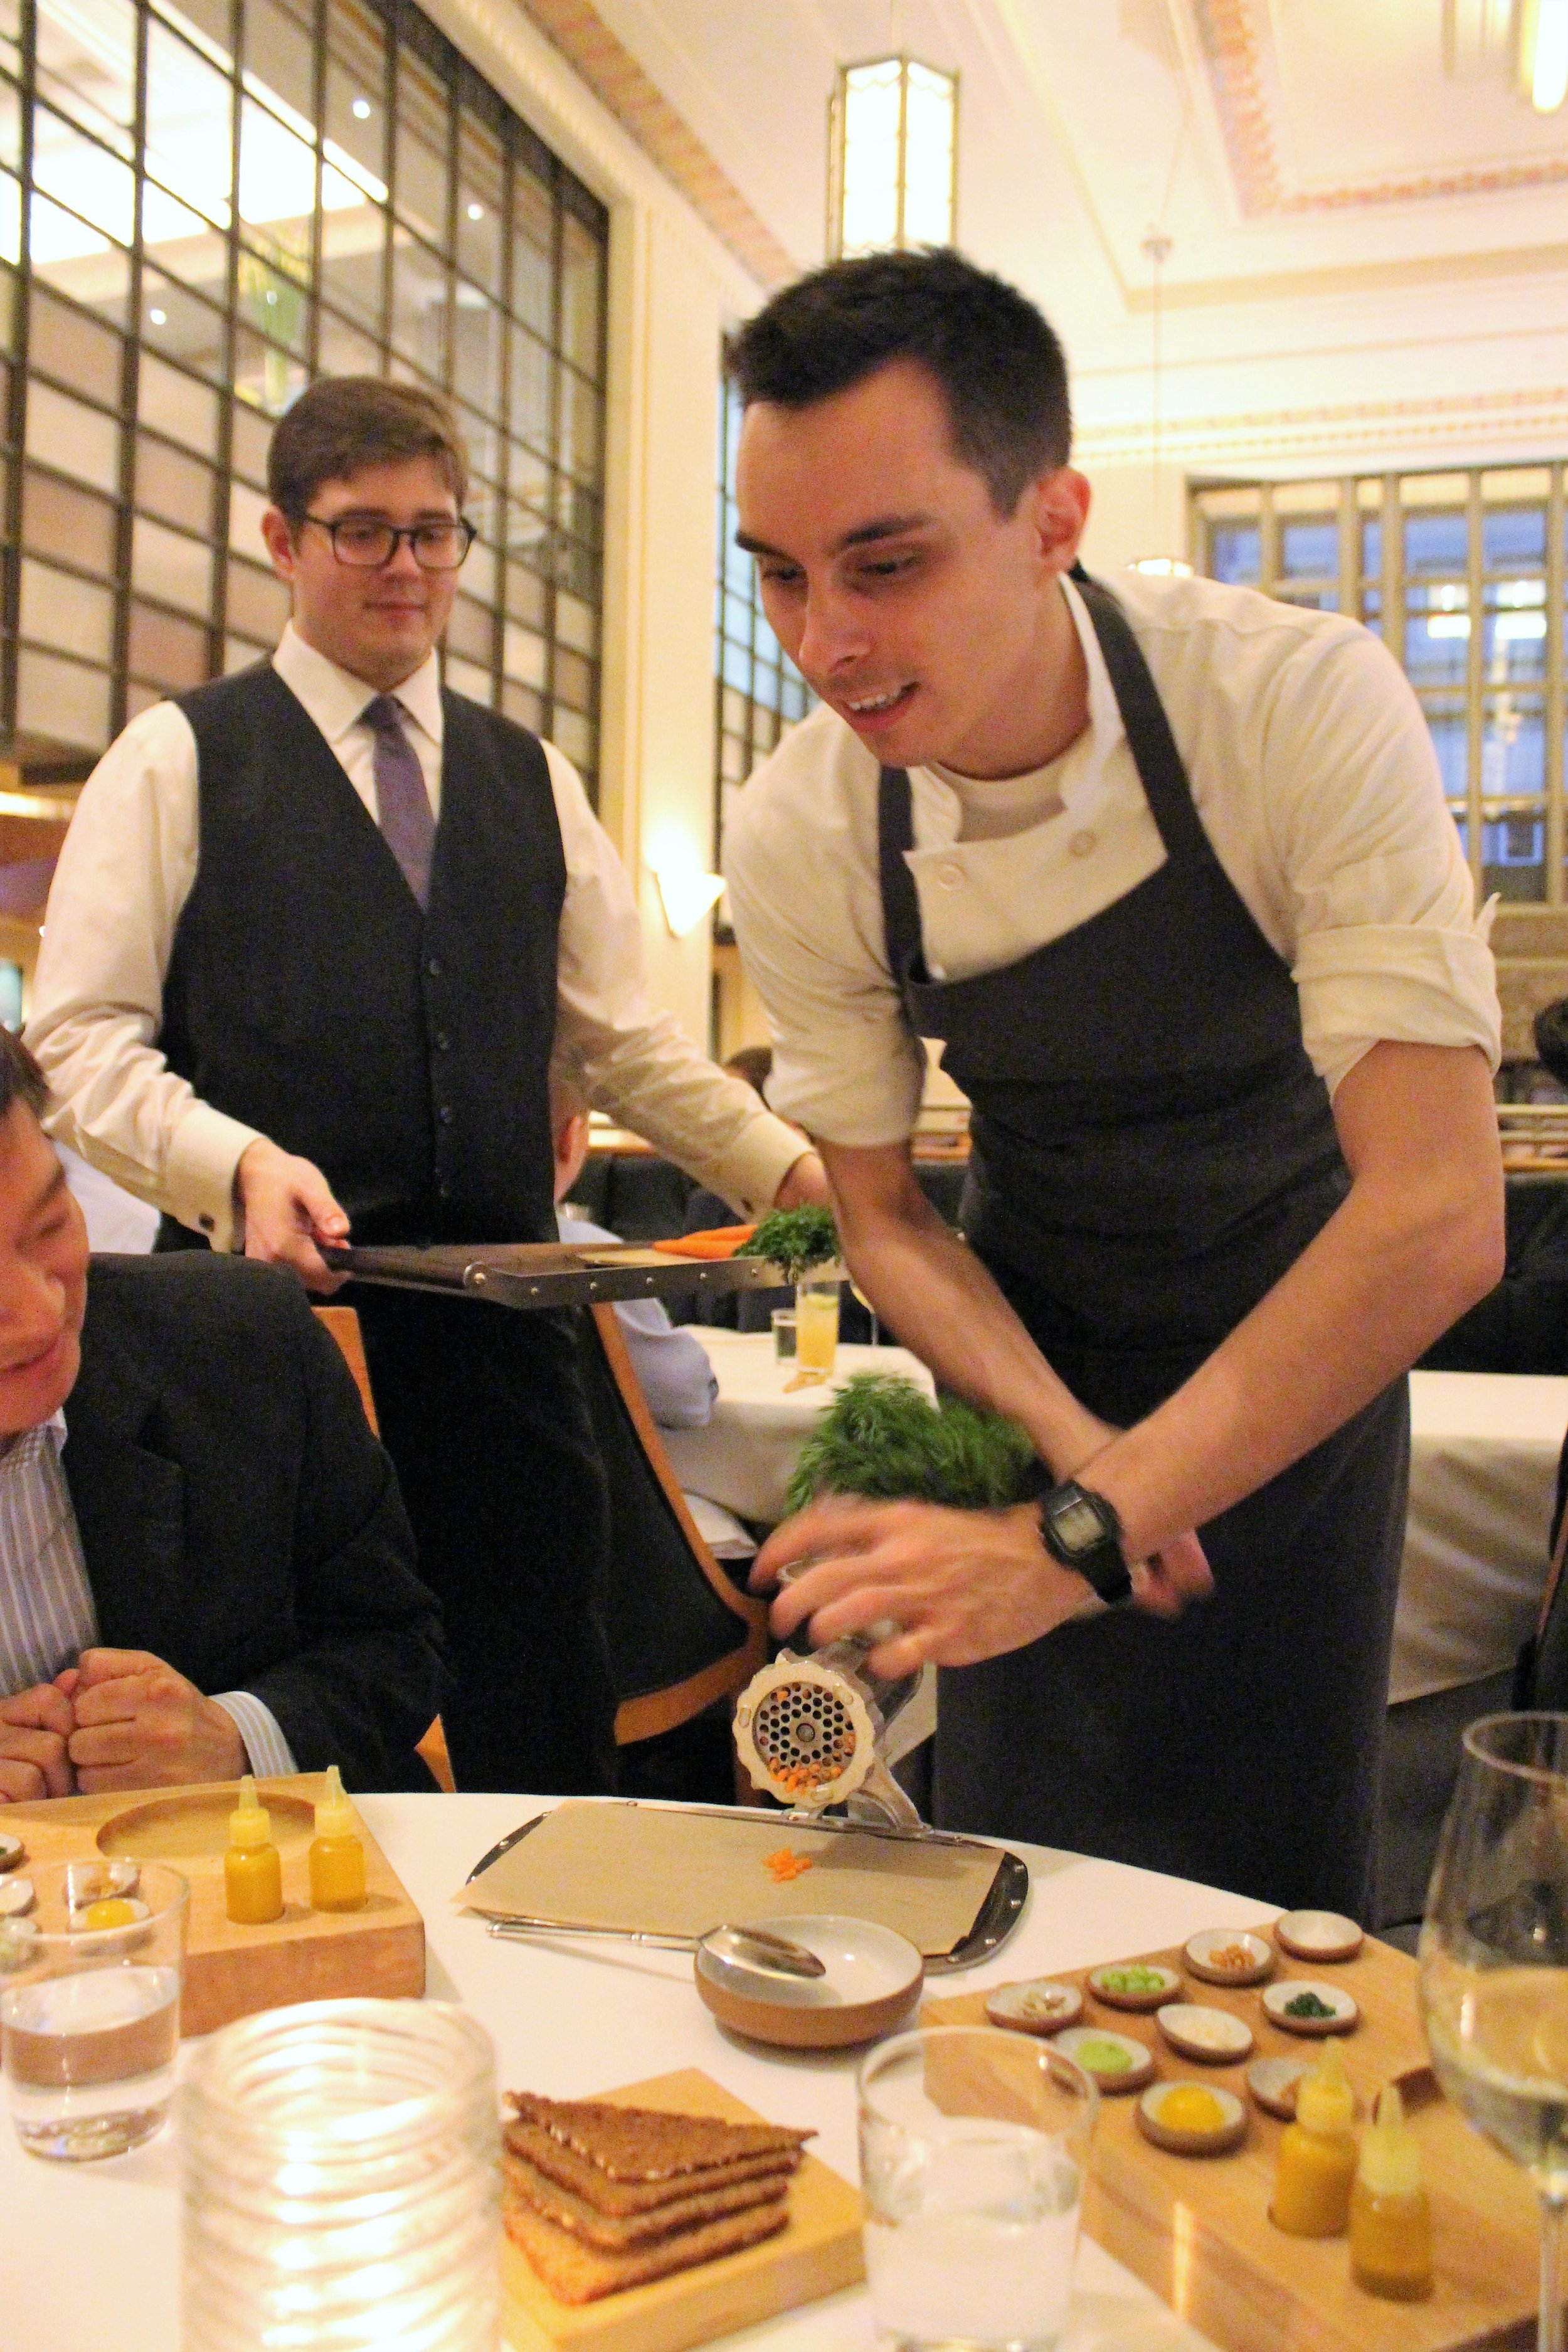 Preparing-the-food-at-Eleven-Madison-Park-in-New-York-City-2.JPG